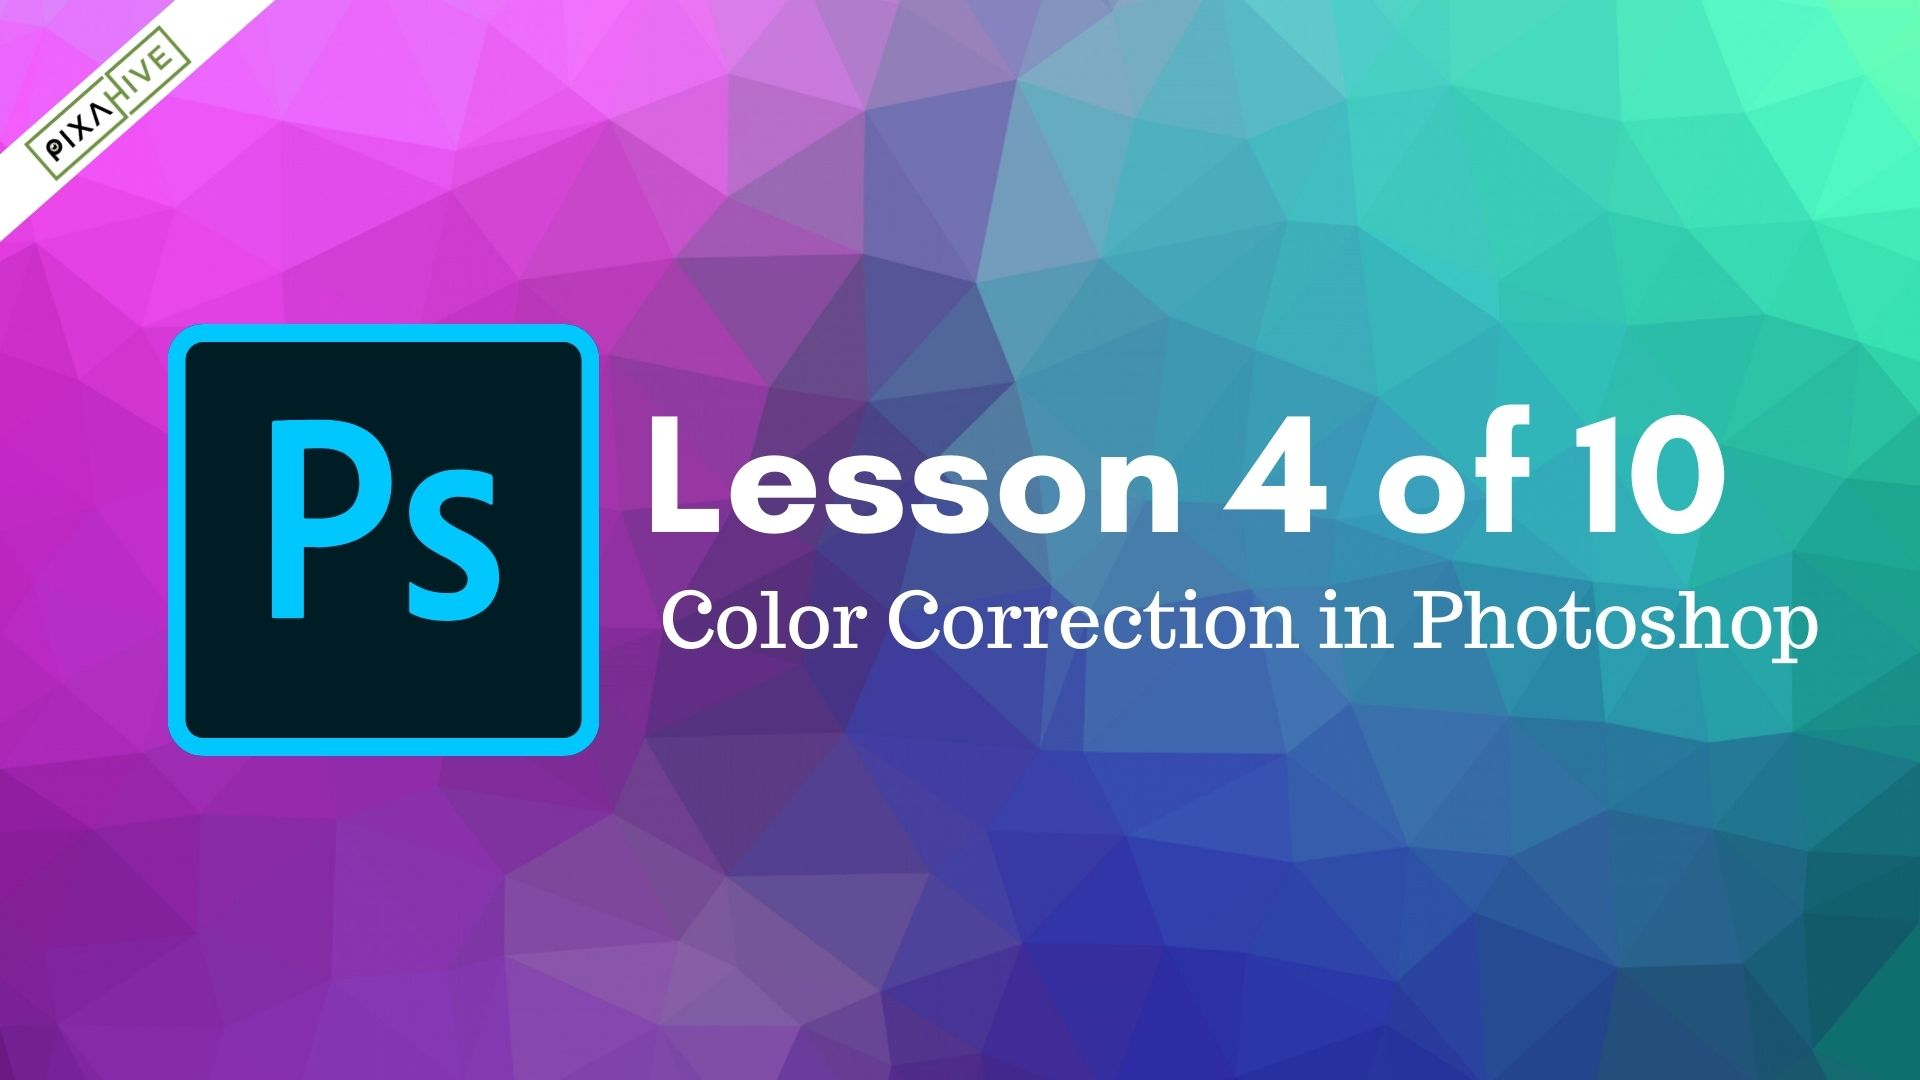 Lesson 4: Color correction in Photoshop to Enhance Images